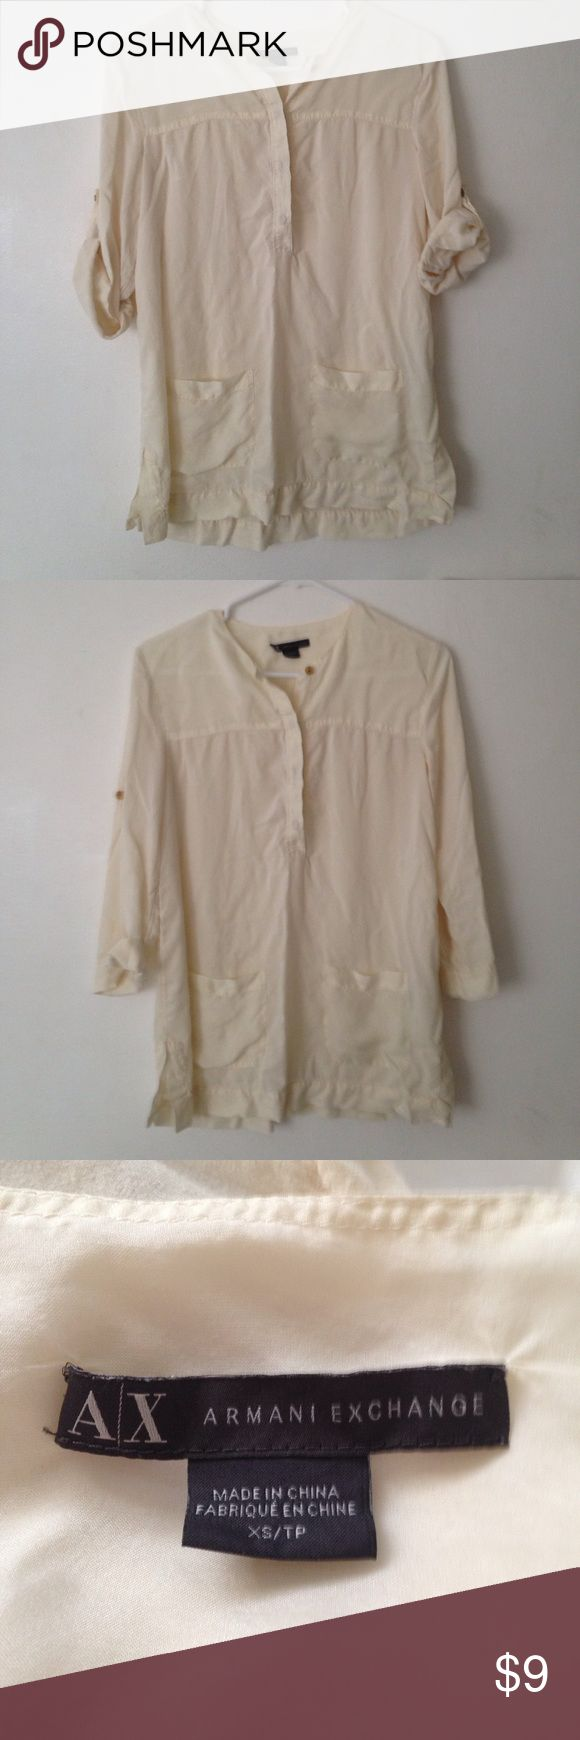 Armani exchange beige blouse Used but in good condition Armani Exchange Tops Blouses